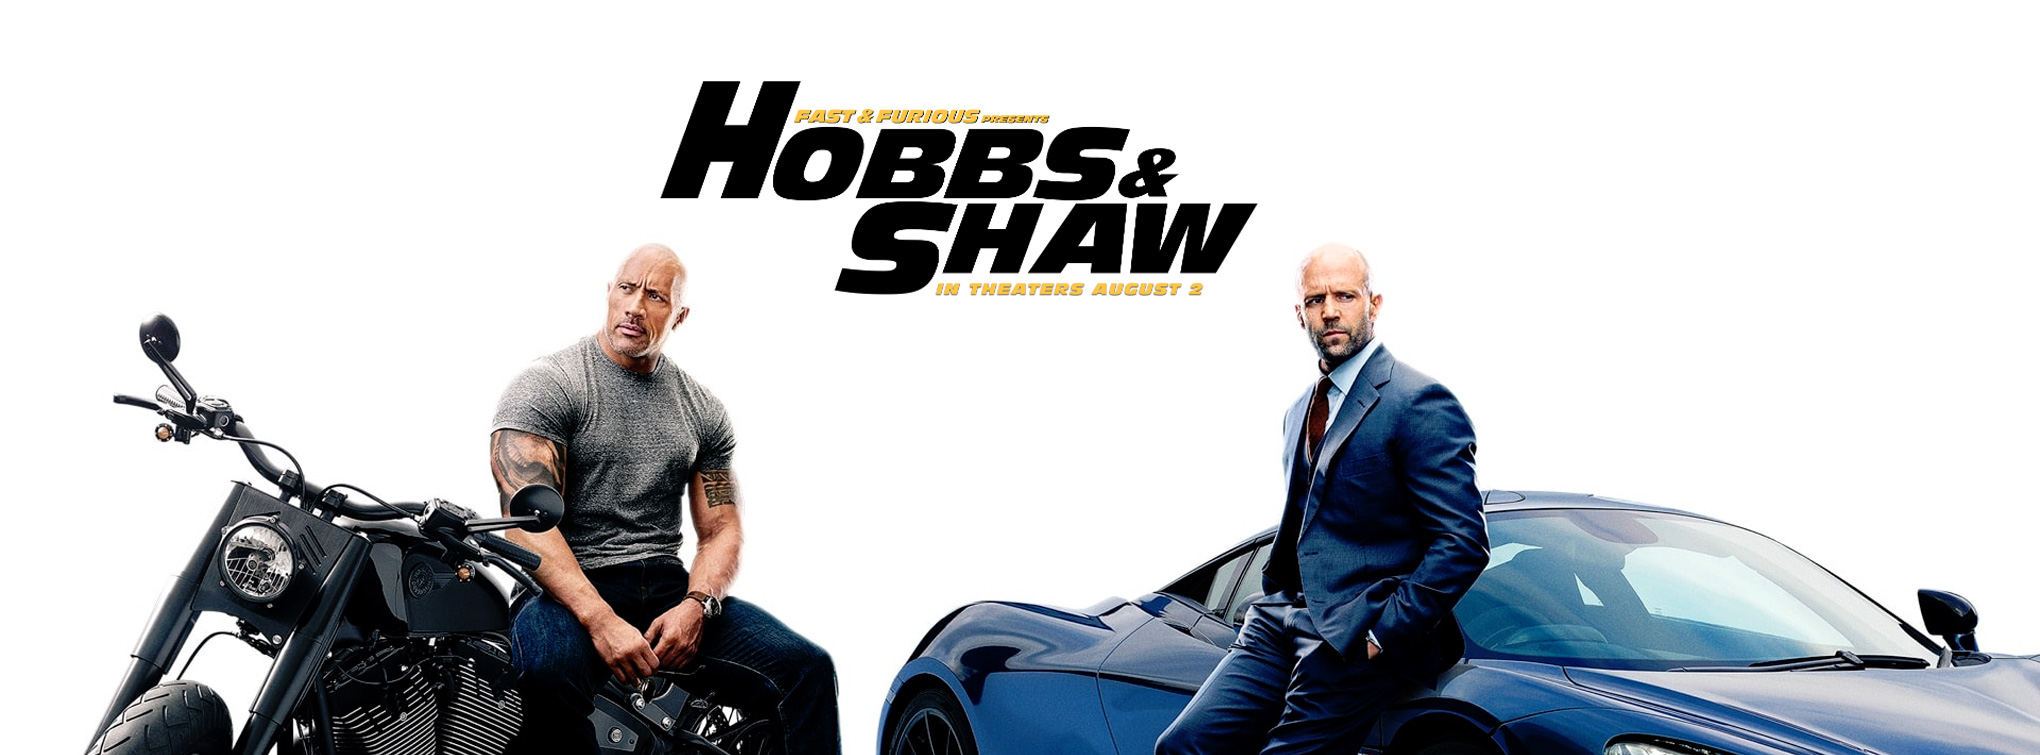 Slider image for Fast & Furious presents Hobbs & Shaw